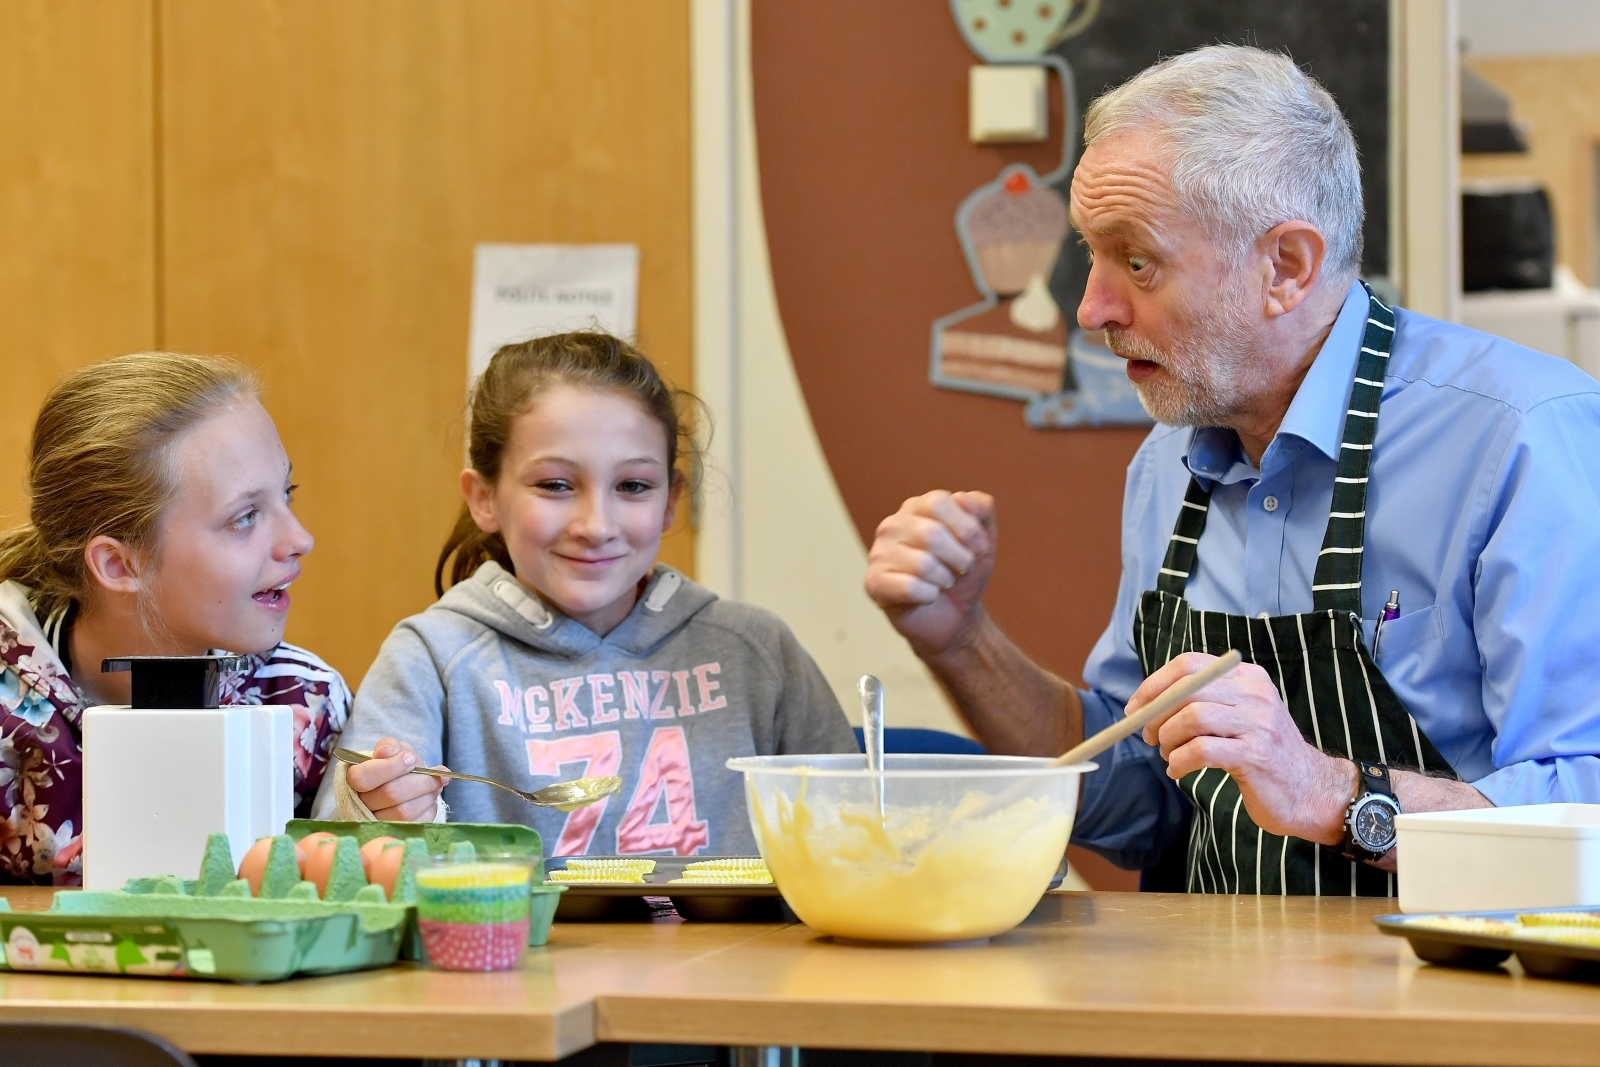 Question of whether Labour leader Jeremy Corbyn will turn vegan becomes hot potato